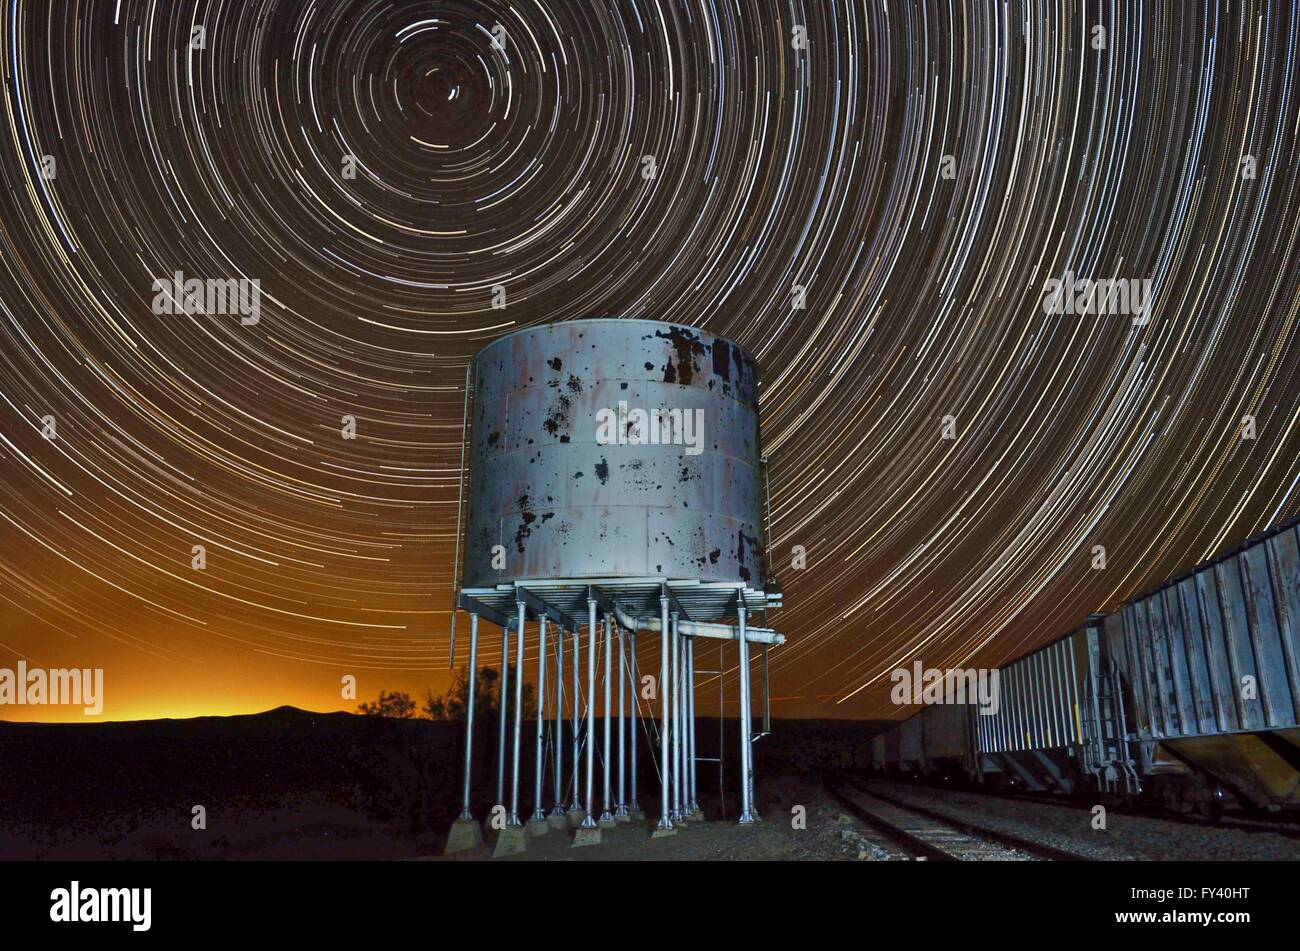 Star trail with old railroad water tower and train cars. Stars form a circular pattern in the night sky over the - Stock Image